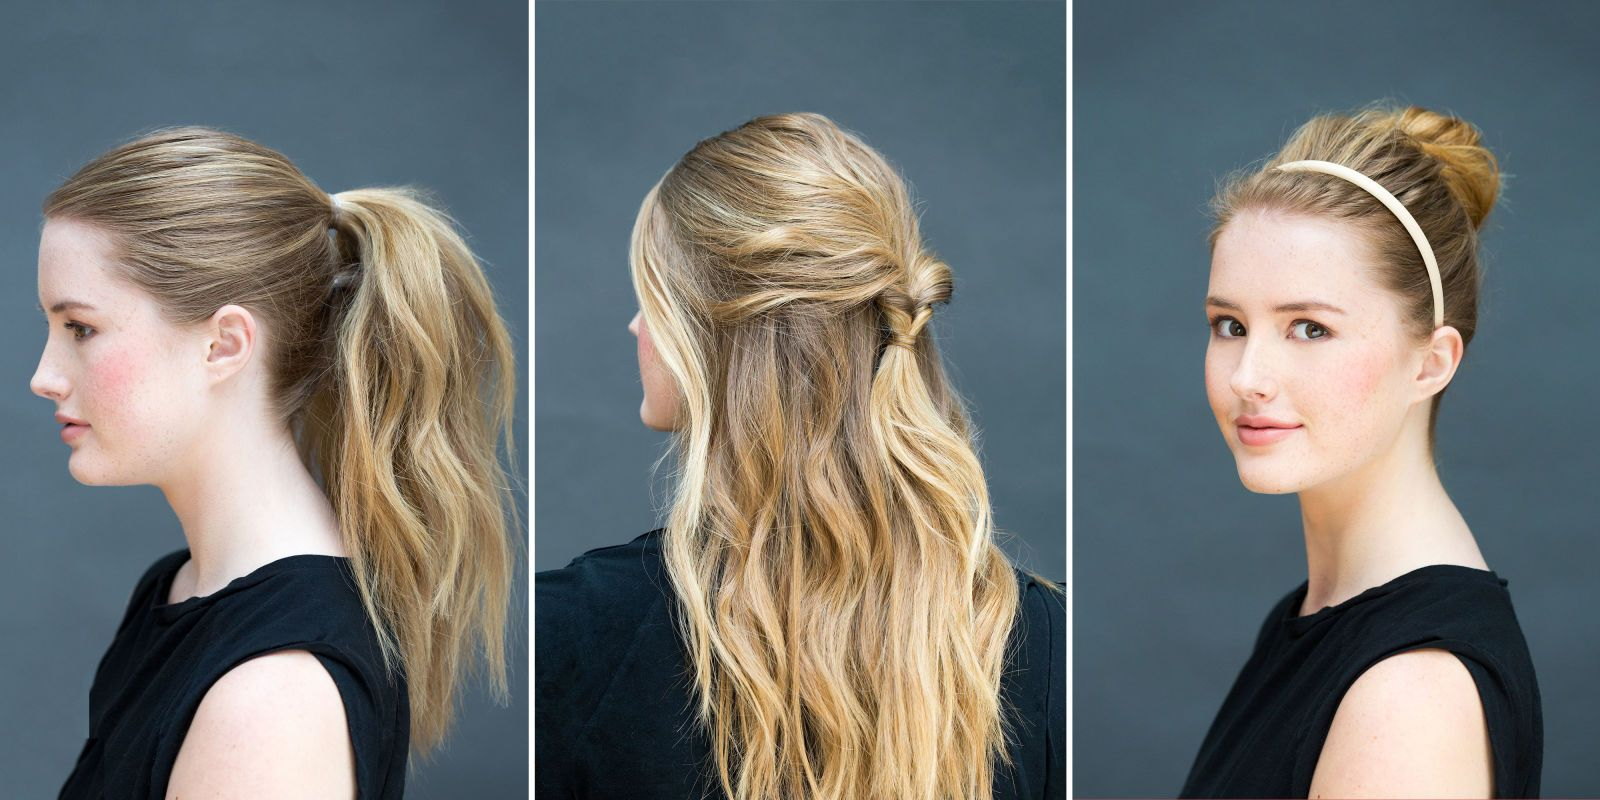 Super Easy Hairstyles You Can Do In Less Than A Minute Easy Hairstyles Easy Hairstyles For Long Hair Medium Hair Styles